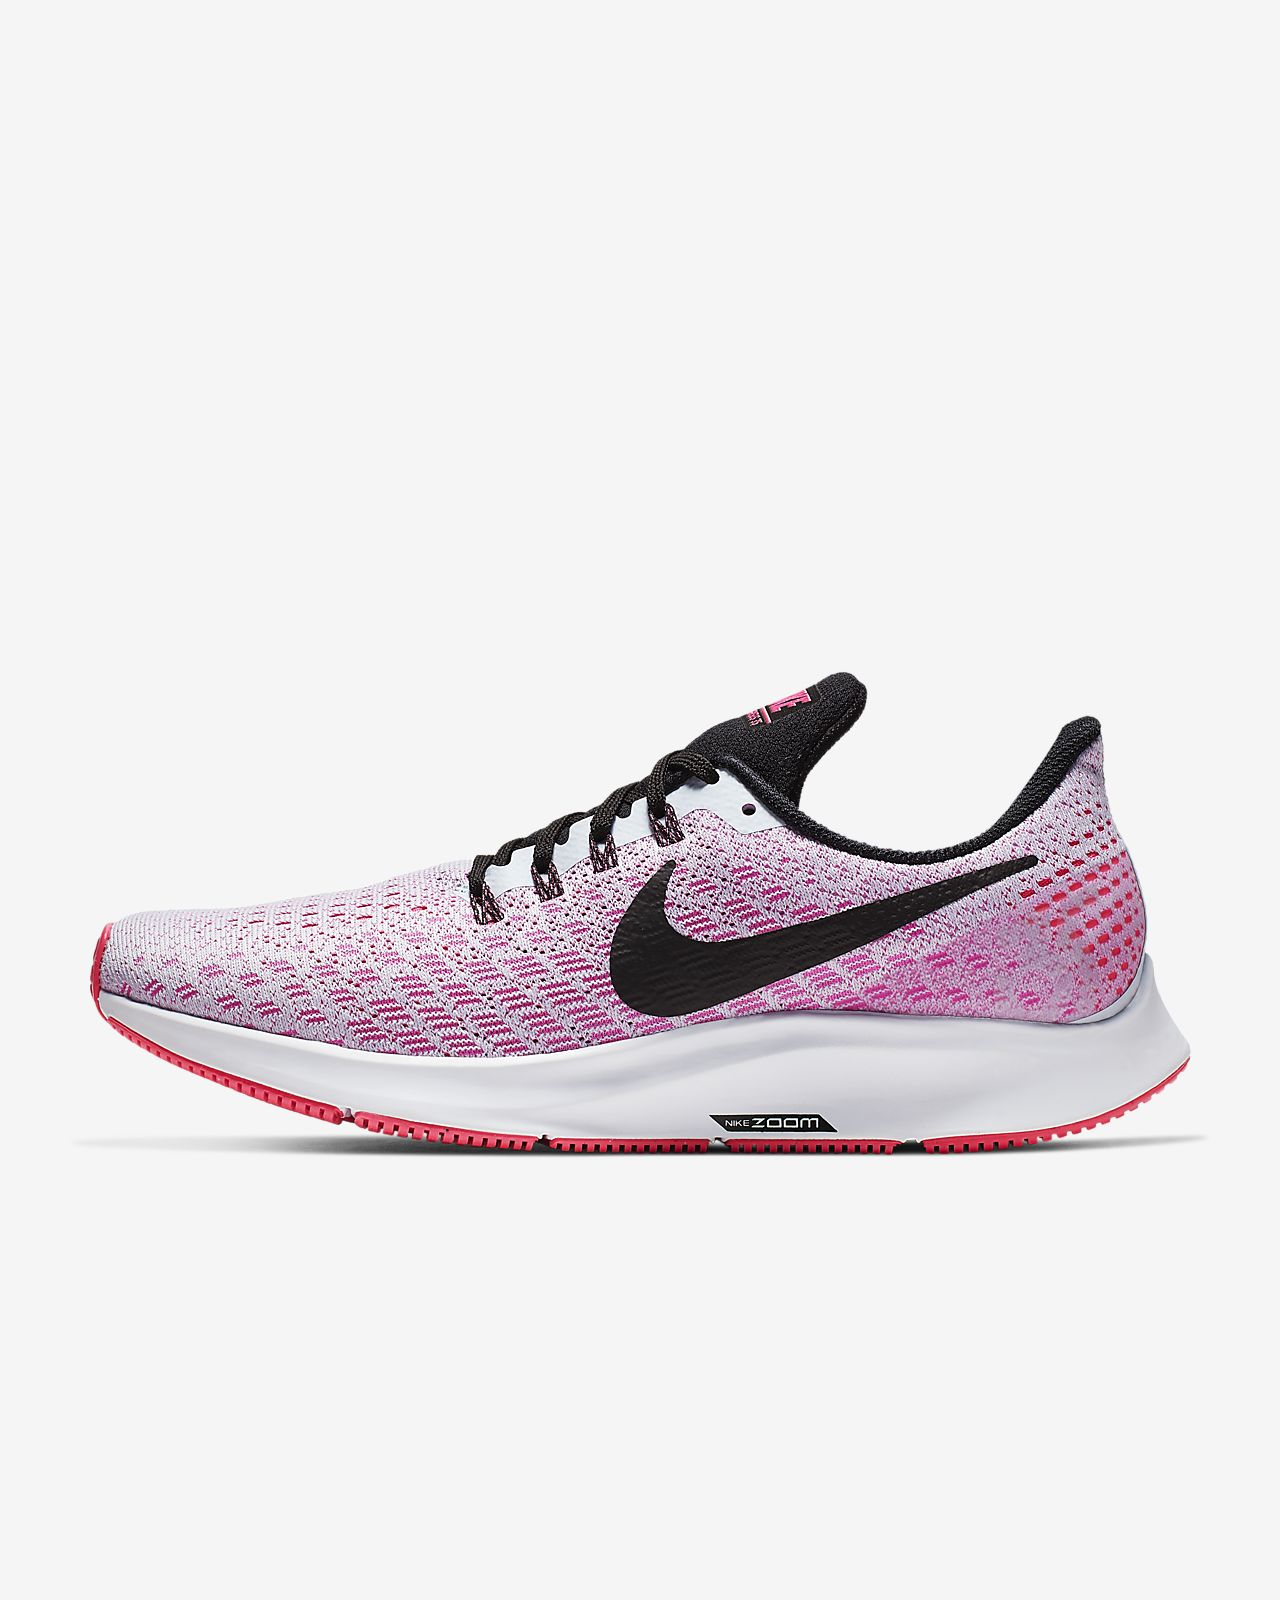 81bf666c796a5 Nike Air Zoom Pegasus 35 Women s Running Shoe. Nike.com